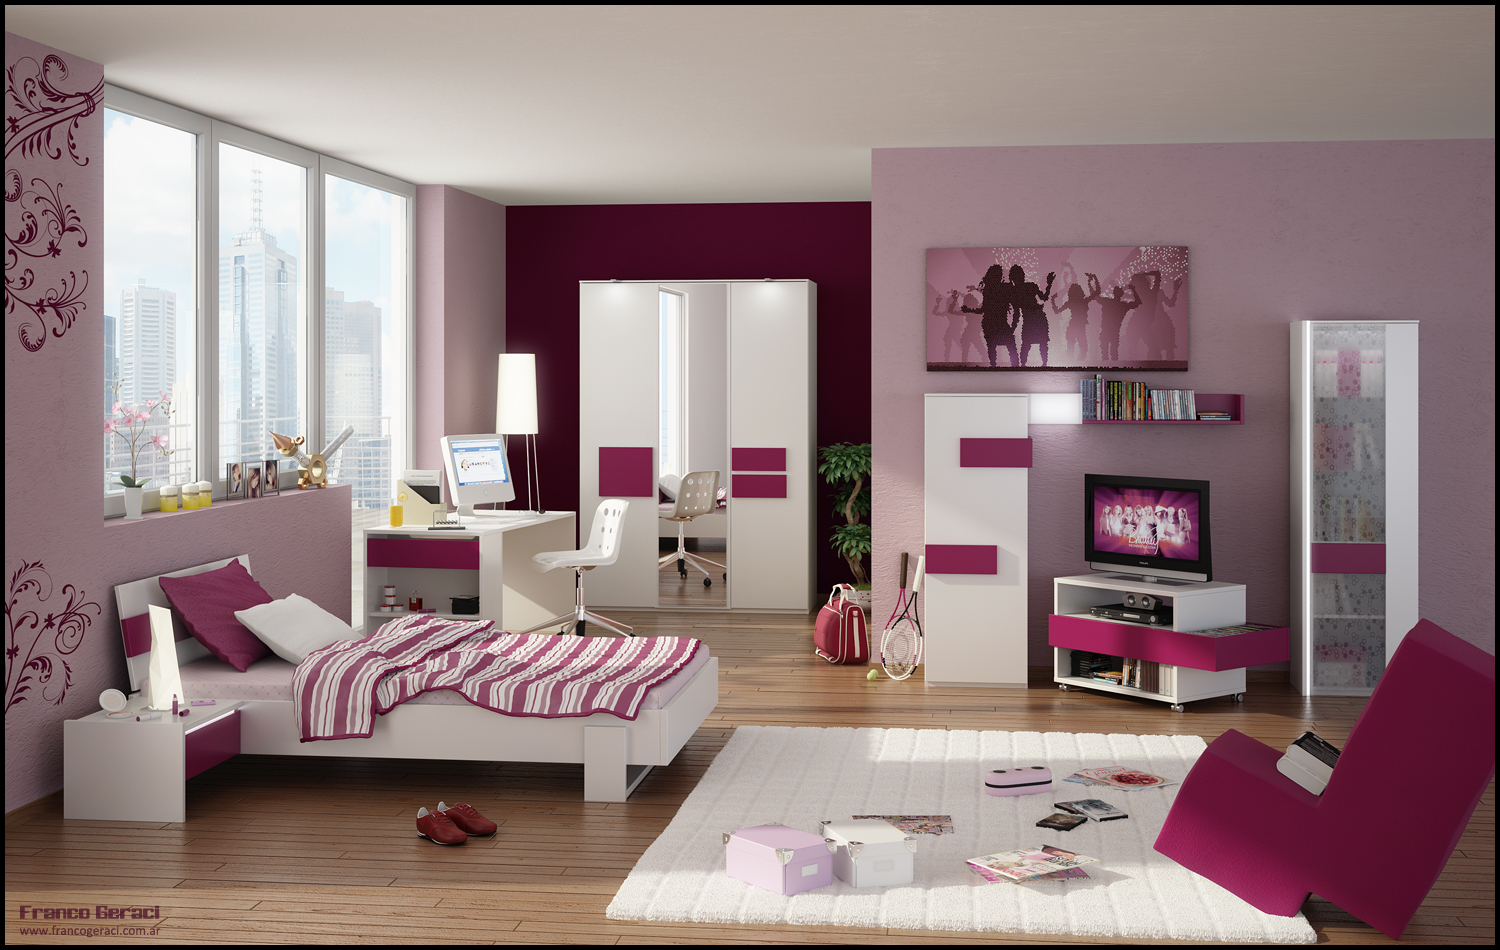 Superb 3dteen Room ByFEG